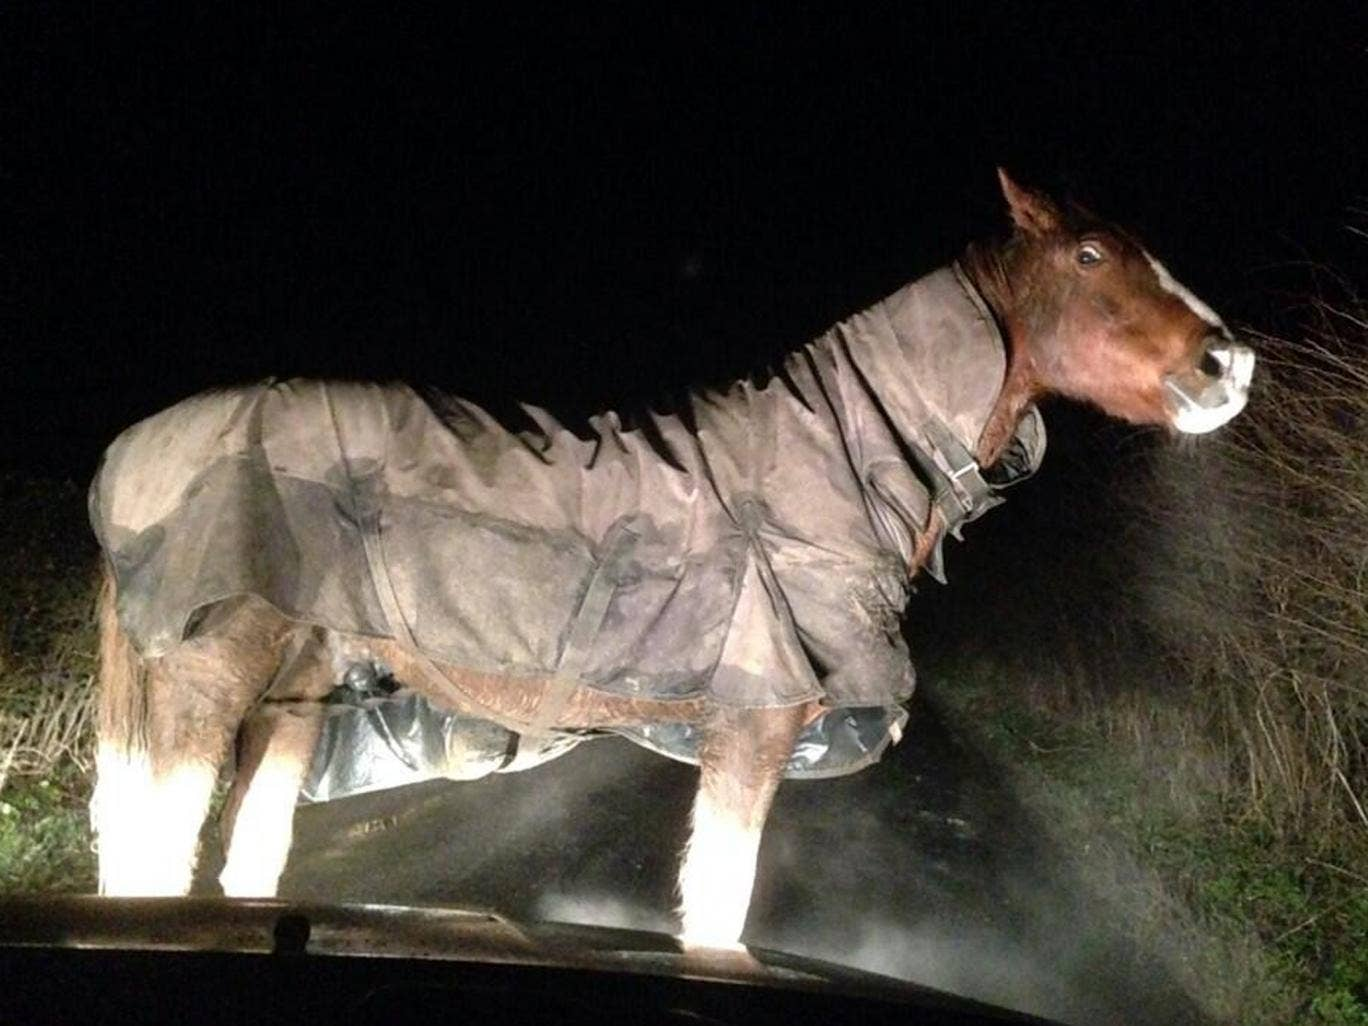 FreeNelly: Police are trying to track down the owner of a horse discovered early Friday morning